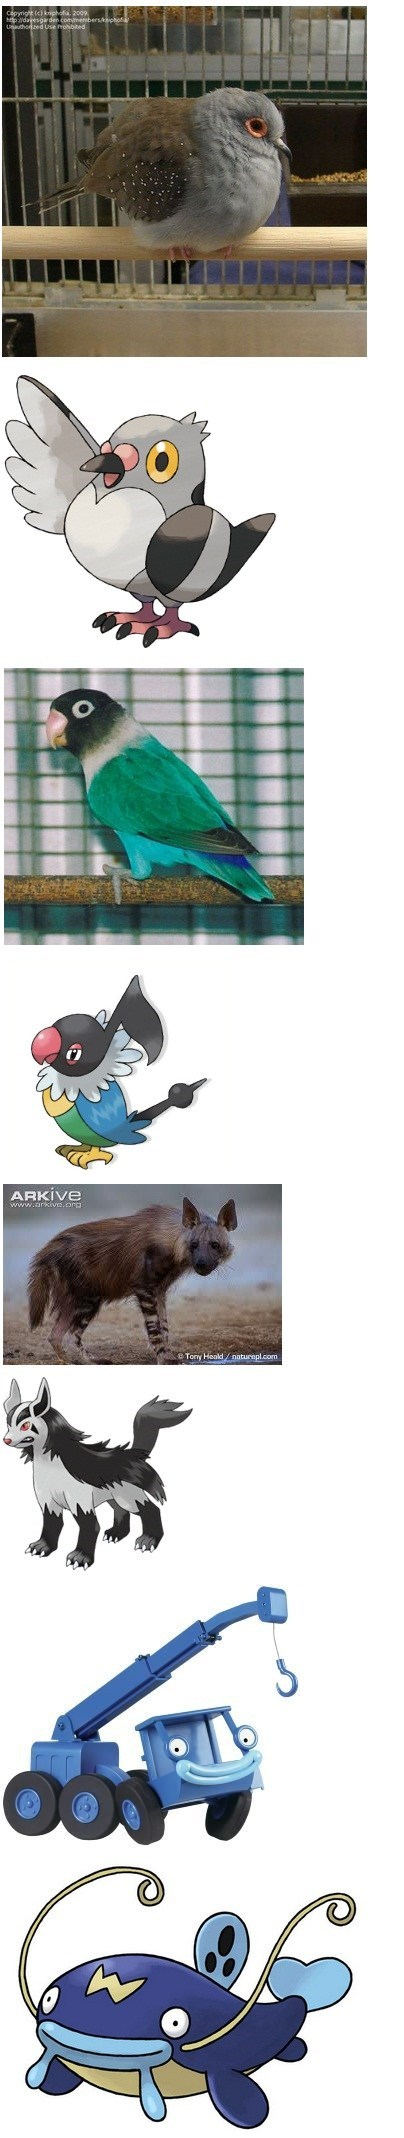 Pokémon whiscash IRL animals - 7345211392